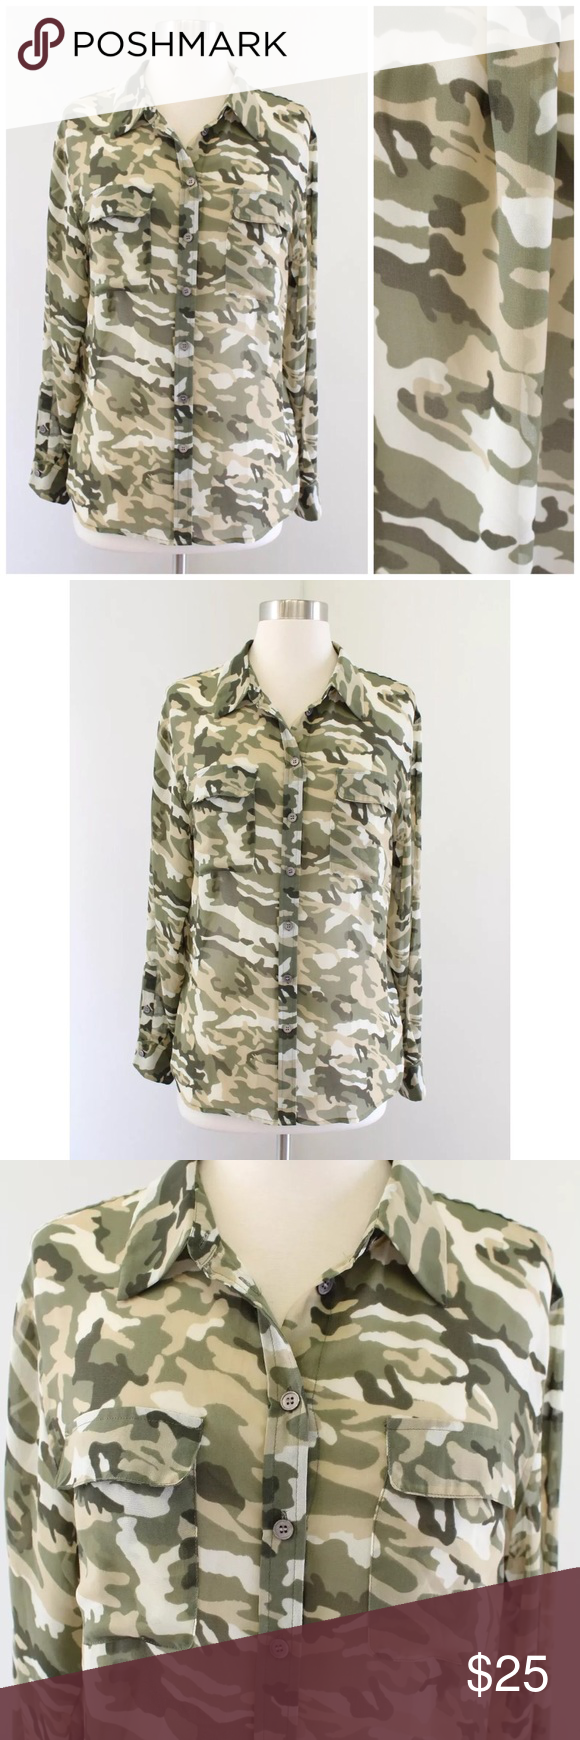 ad283075b92f8 Vince Camuto Sheer Camo Button Up Size small Pit to pit: 20